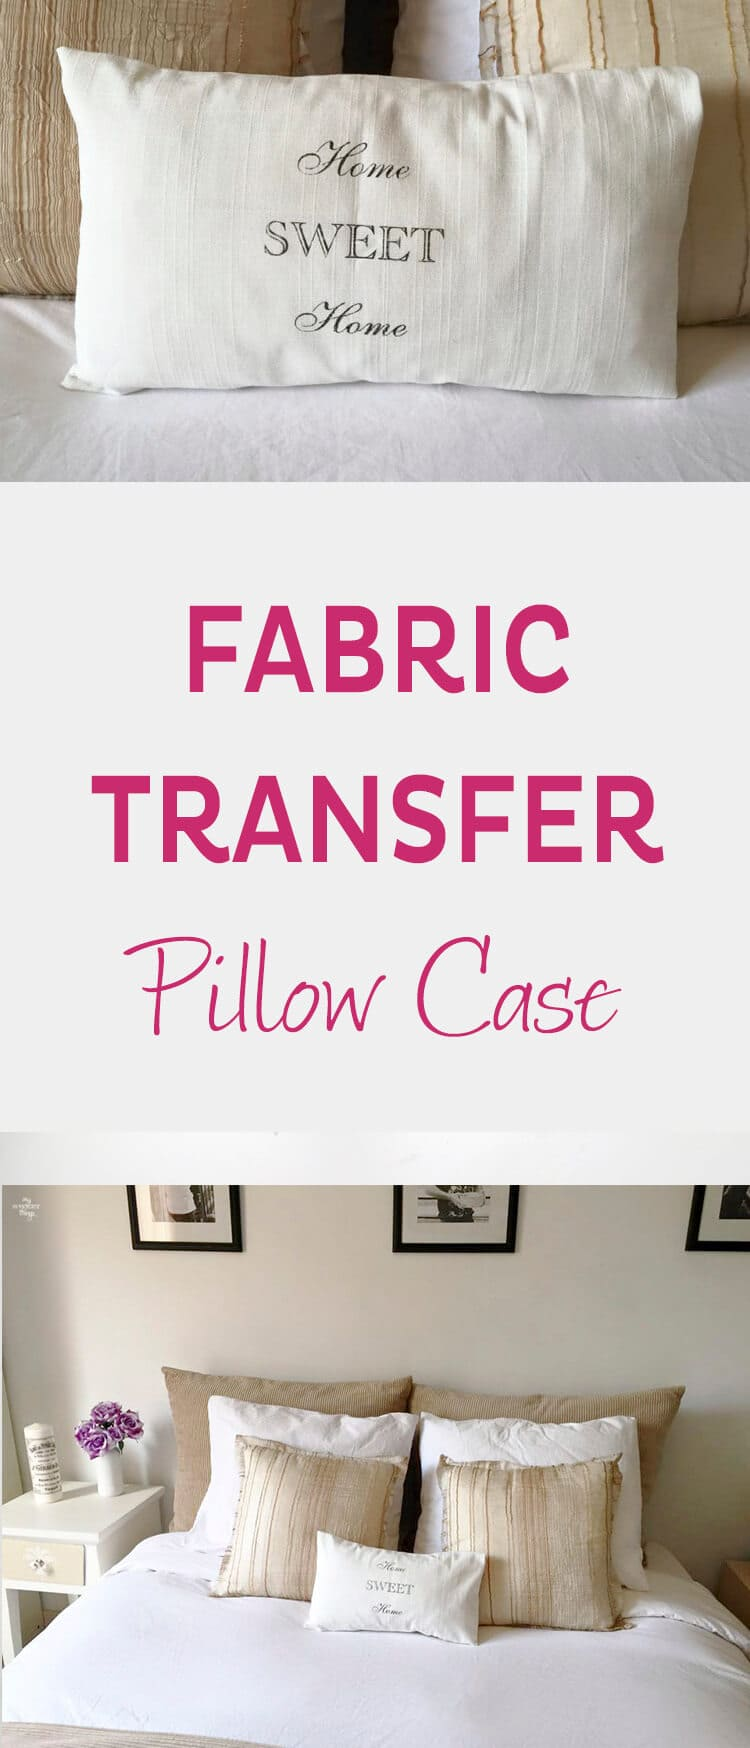 How to make your own DIY Fabric transfer pillow case the easy way · Via www.sweethings.net